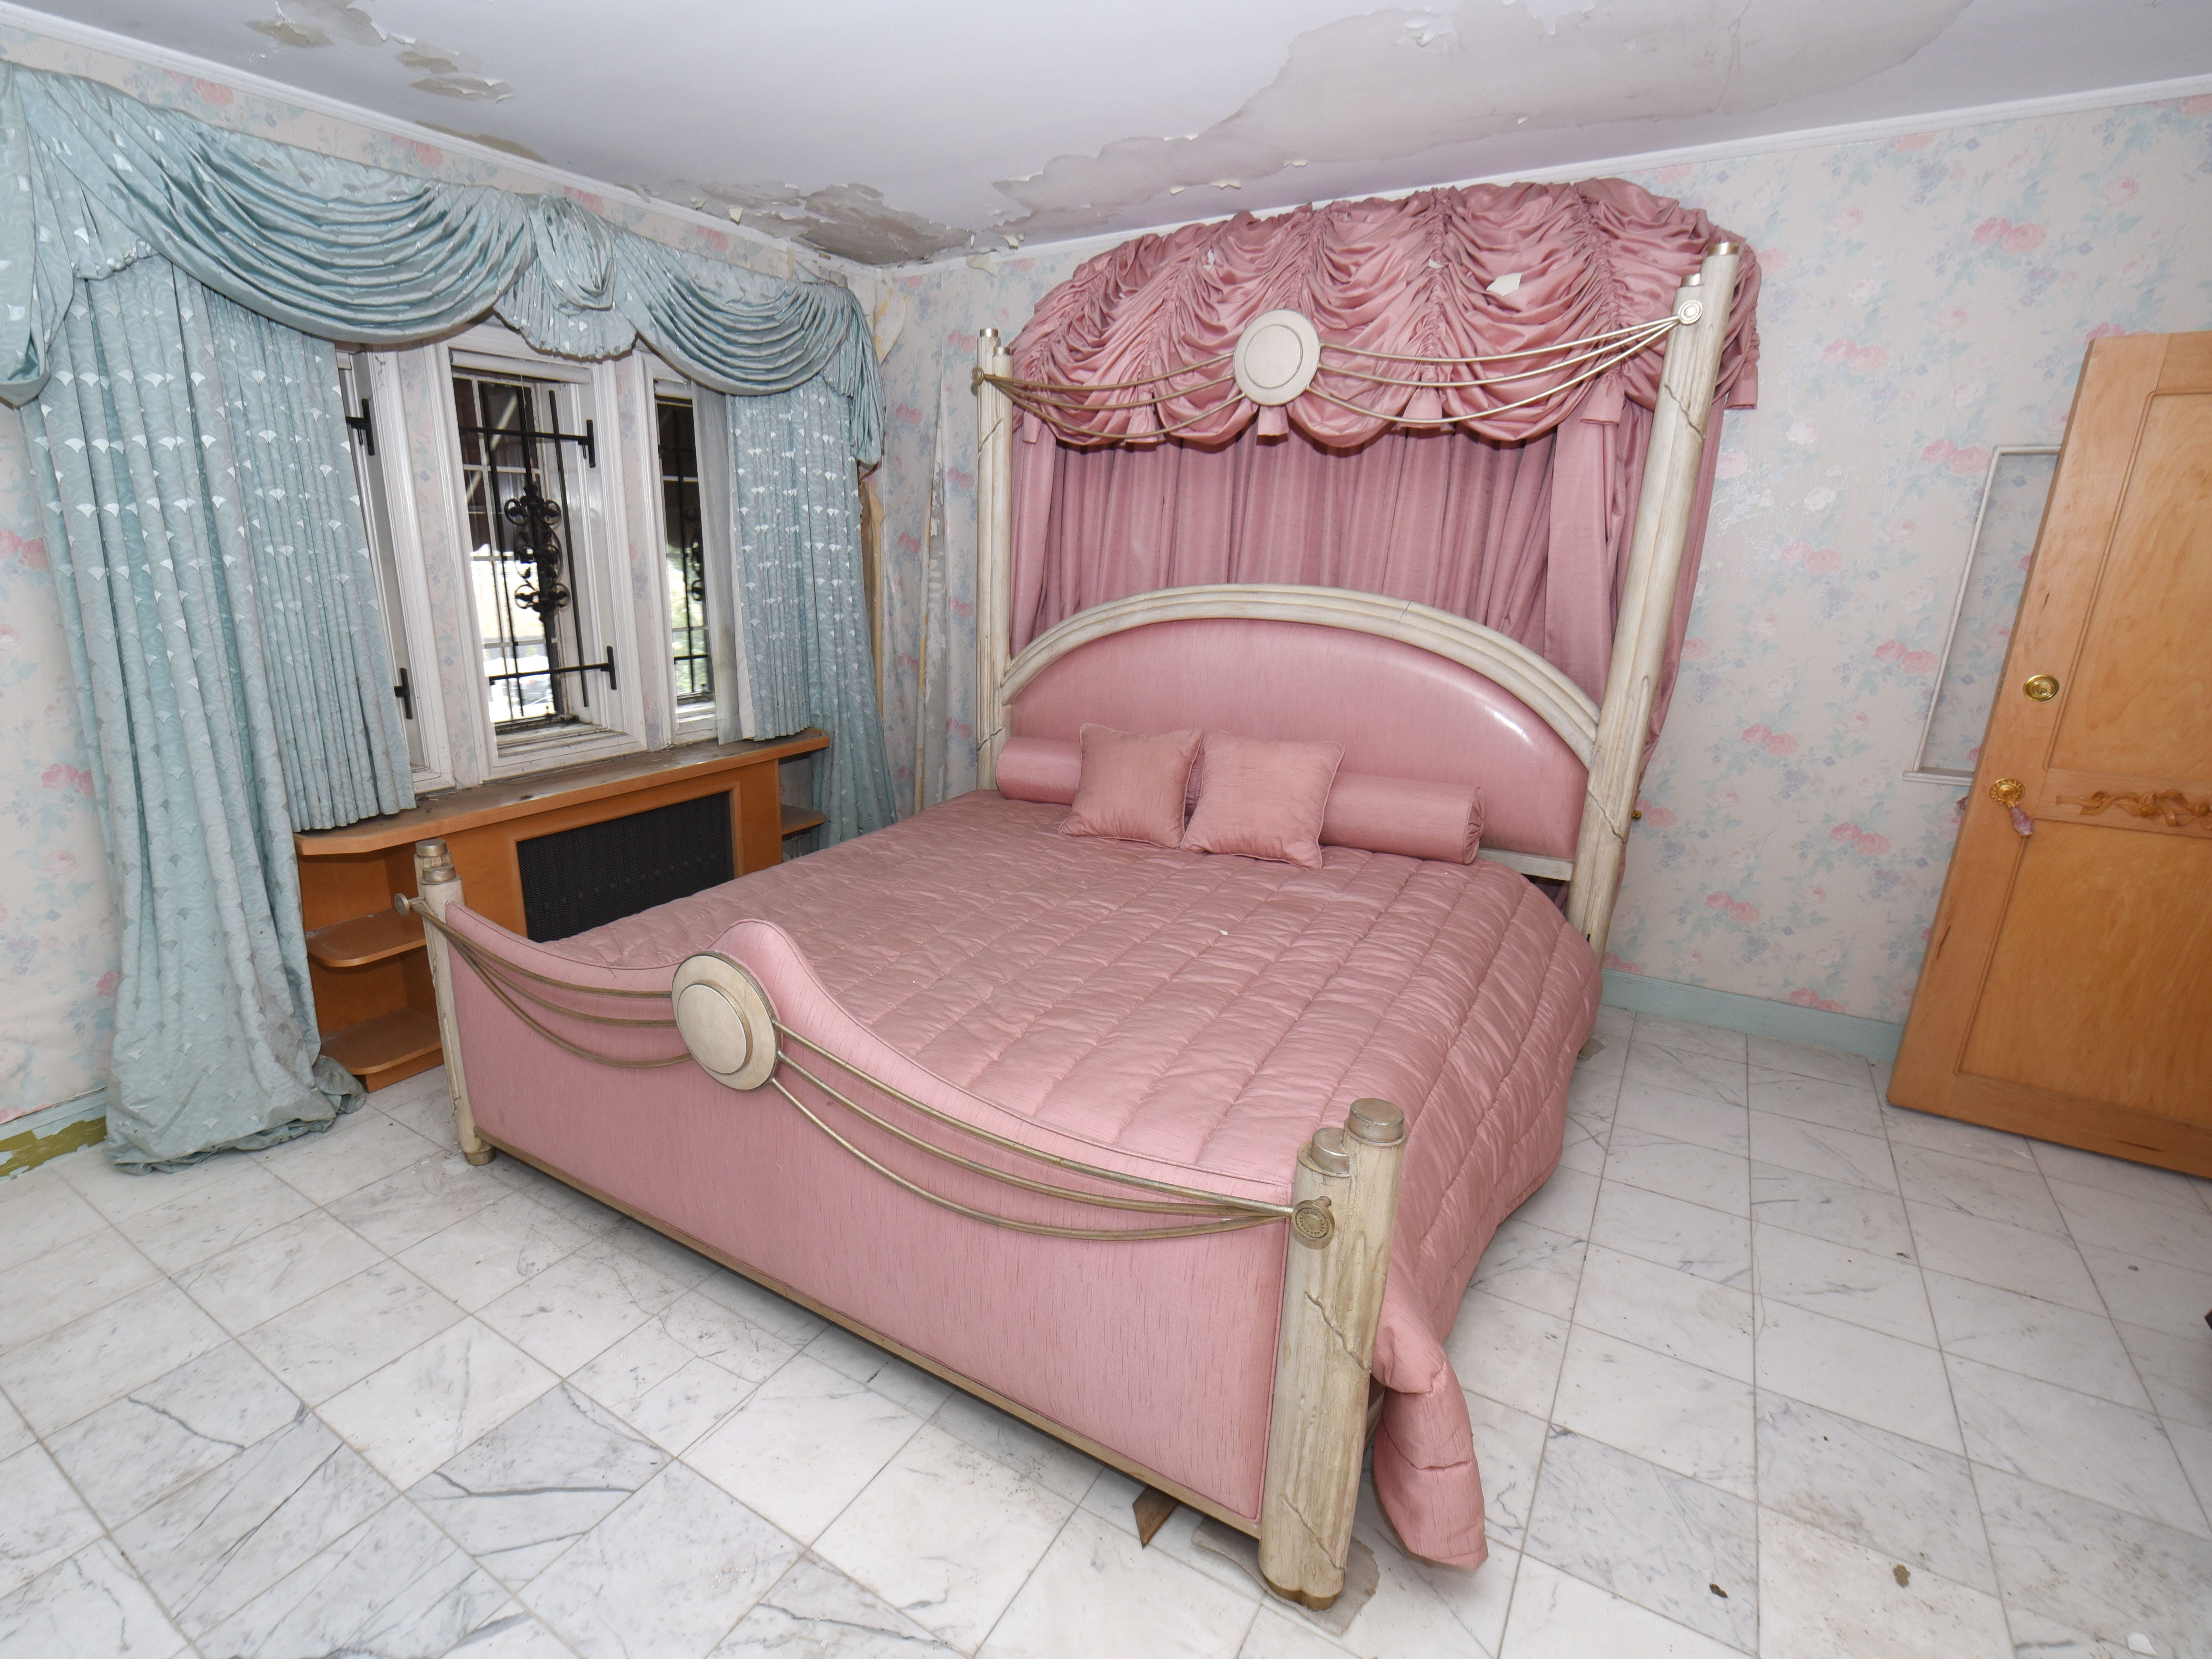 Aretha Franklin's bedroom inside the Rose Estate is one of five bedrooms in the home, which covers 6,200 square feet.